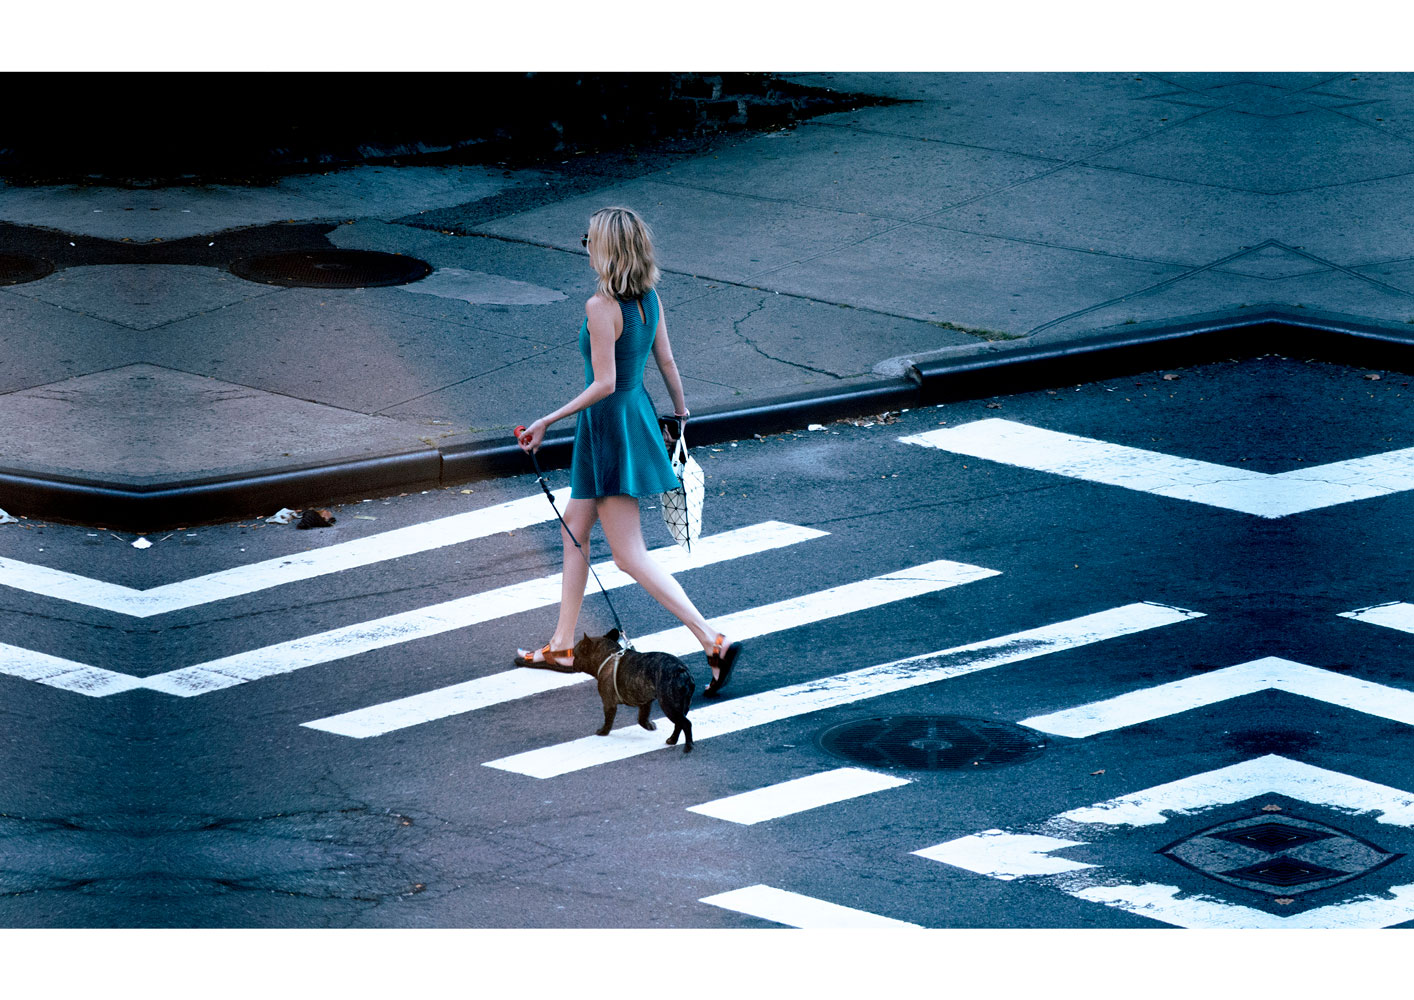 Street photography with the title 'NYC'. A woman in a dress crossing the road with her dog on a leash.